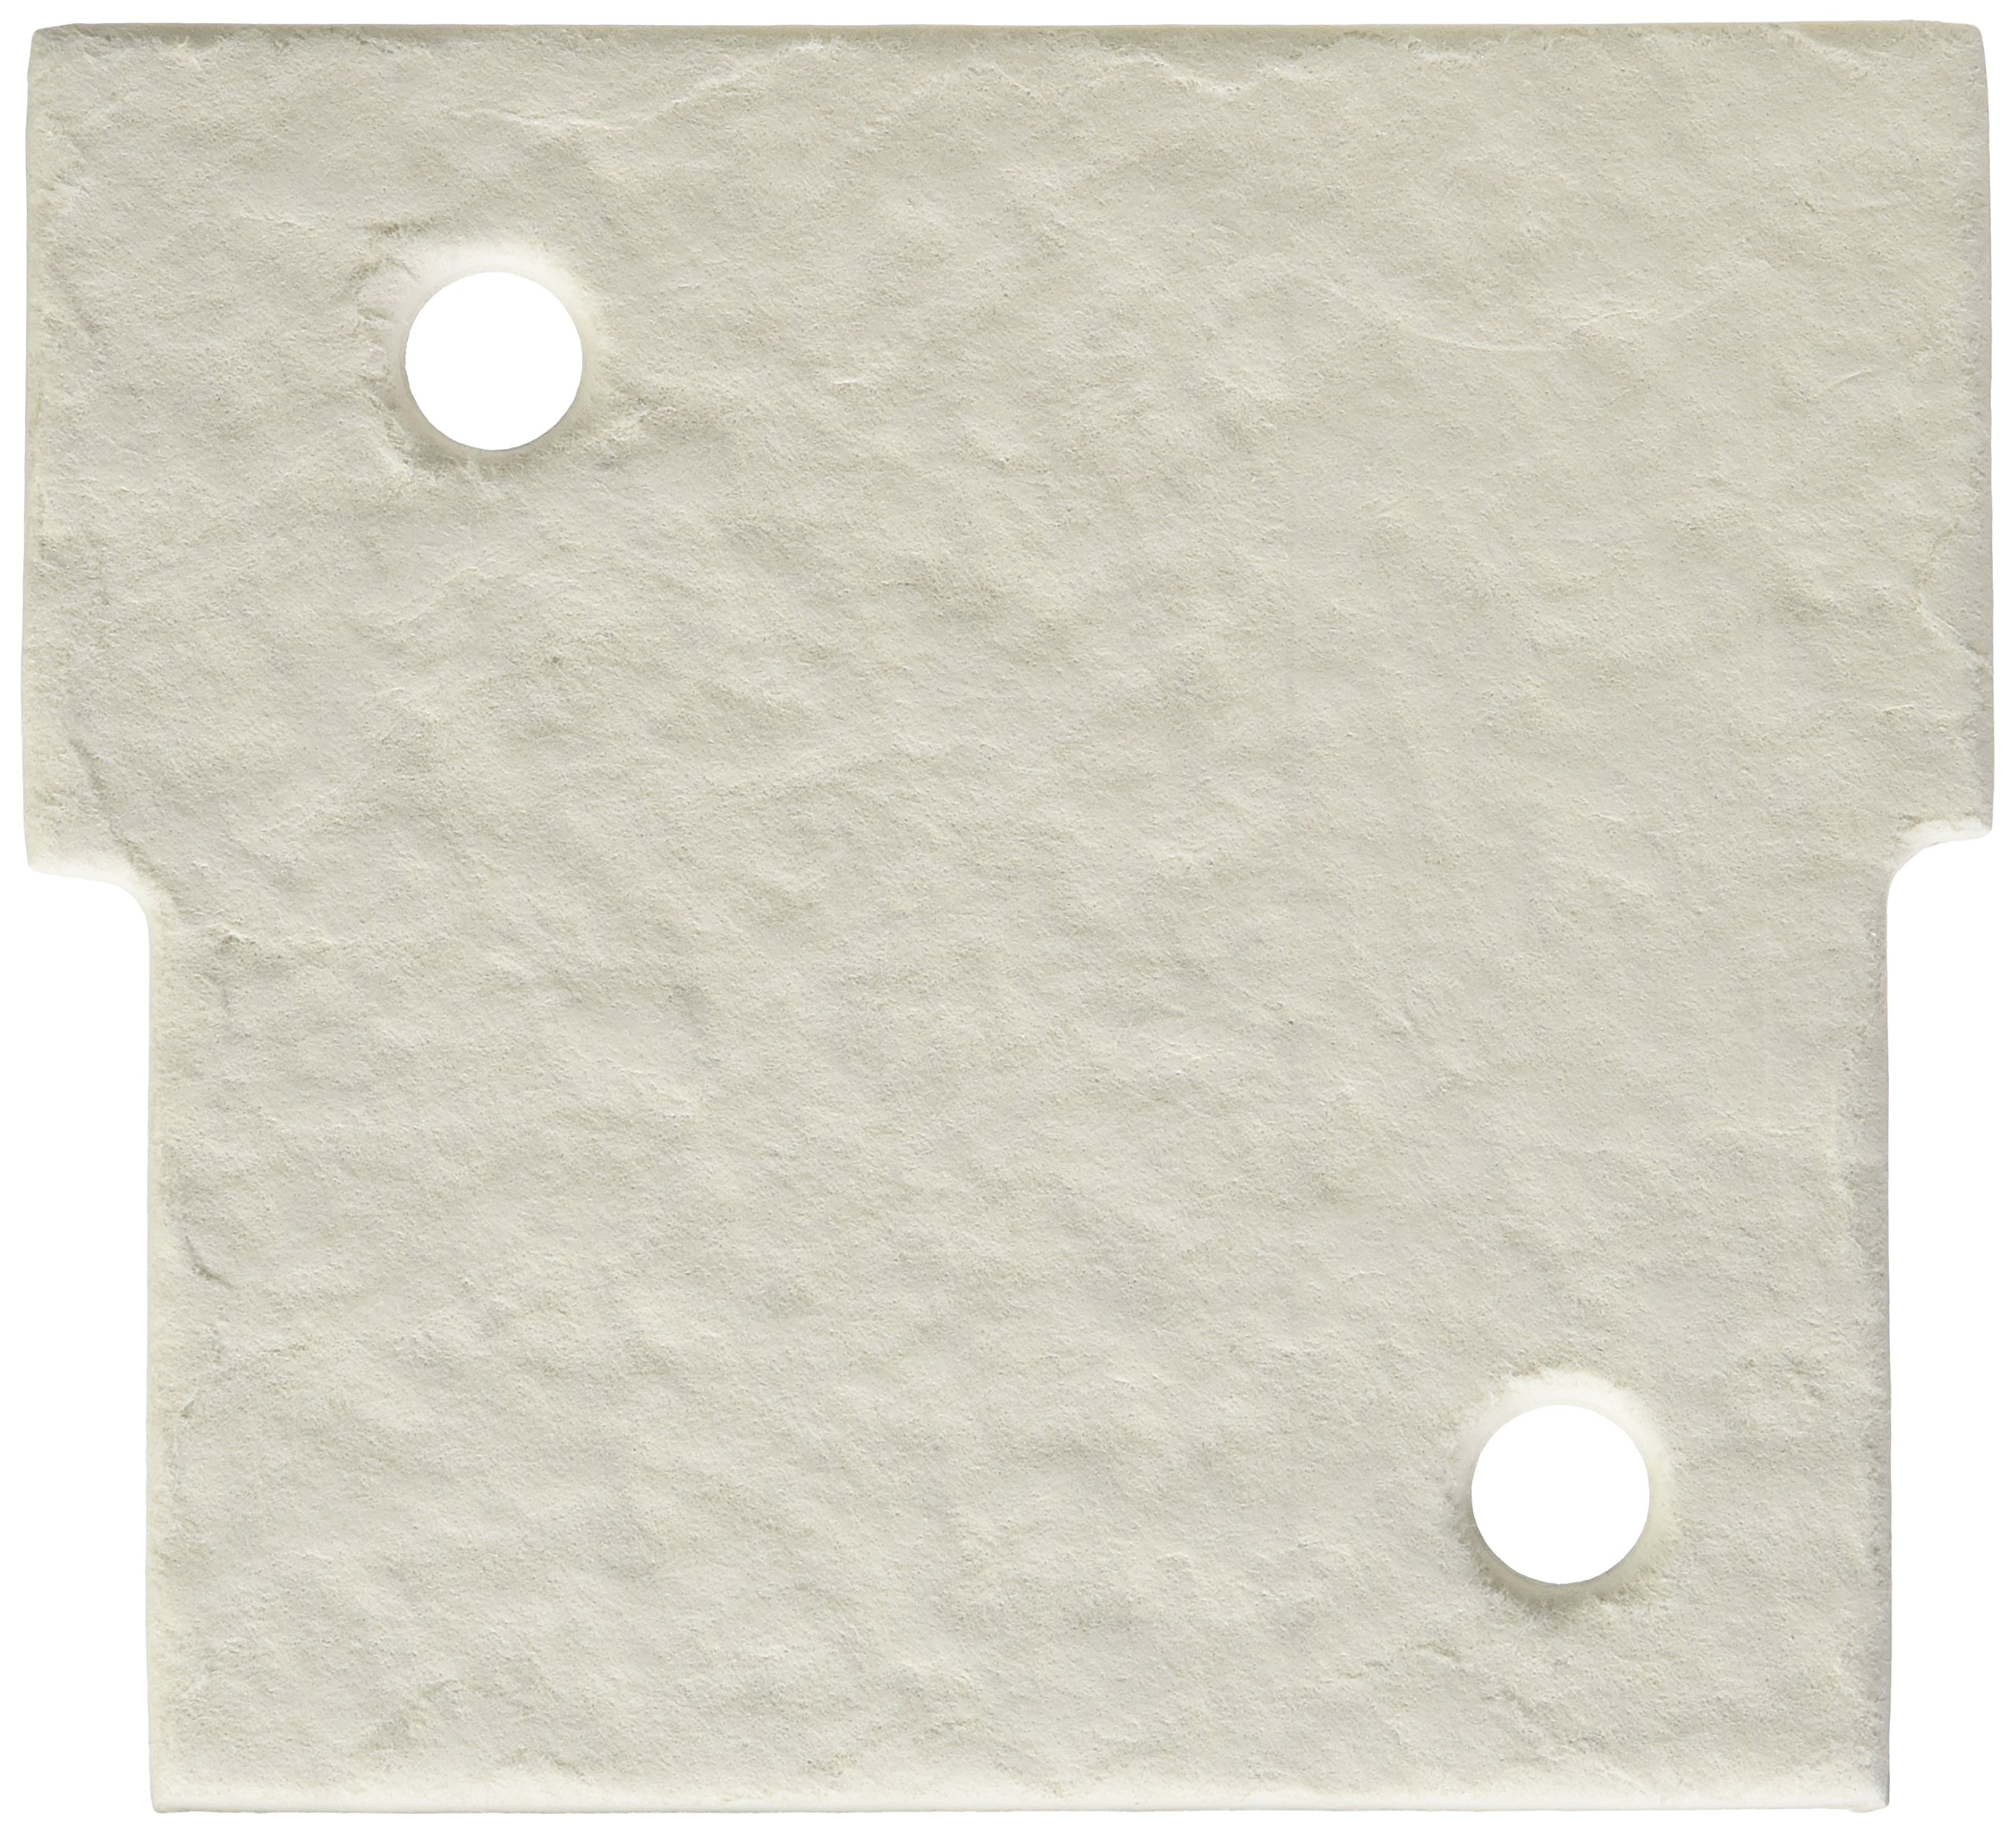 Buon Vino MJFP-2 Mini Jet Filter Pads No.2 Polish Filtration (Pack of 12)